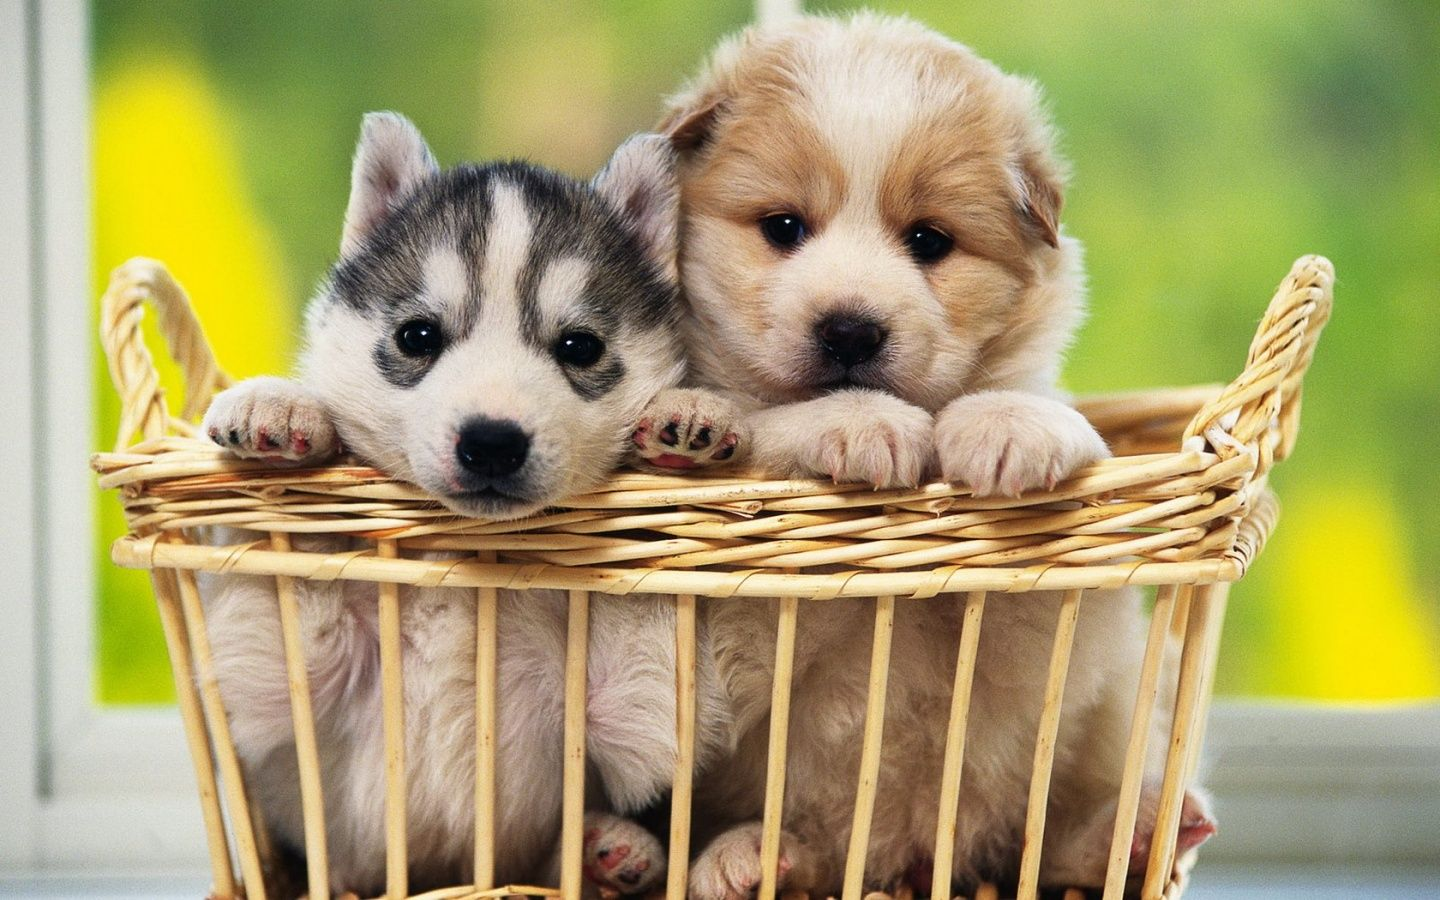 Cute Dogs With Babies Cute Baby Dogs Hd Wallpapers Cute Dog Wallpaper Cute Puppy Pictures Cute Puppies